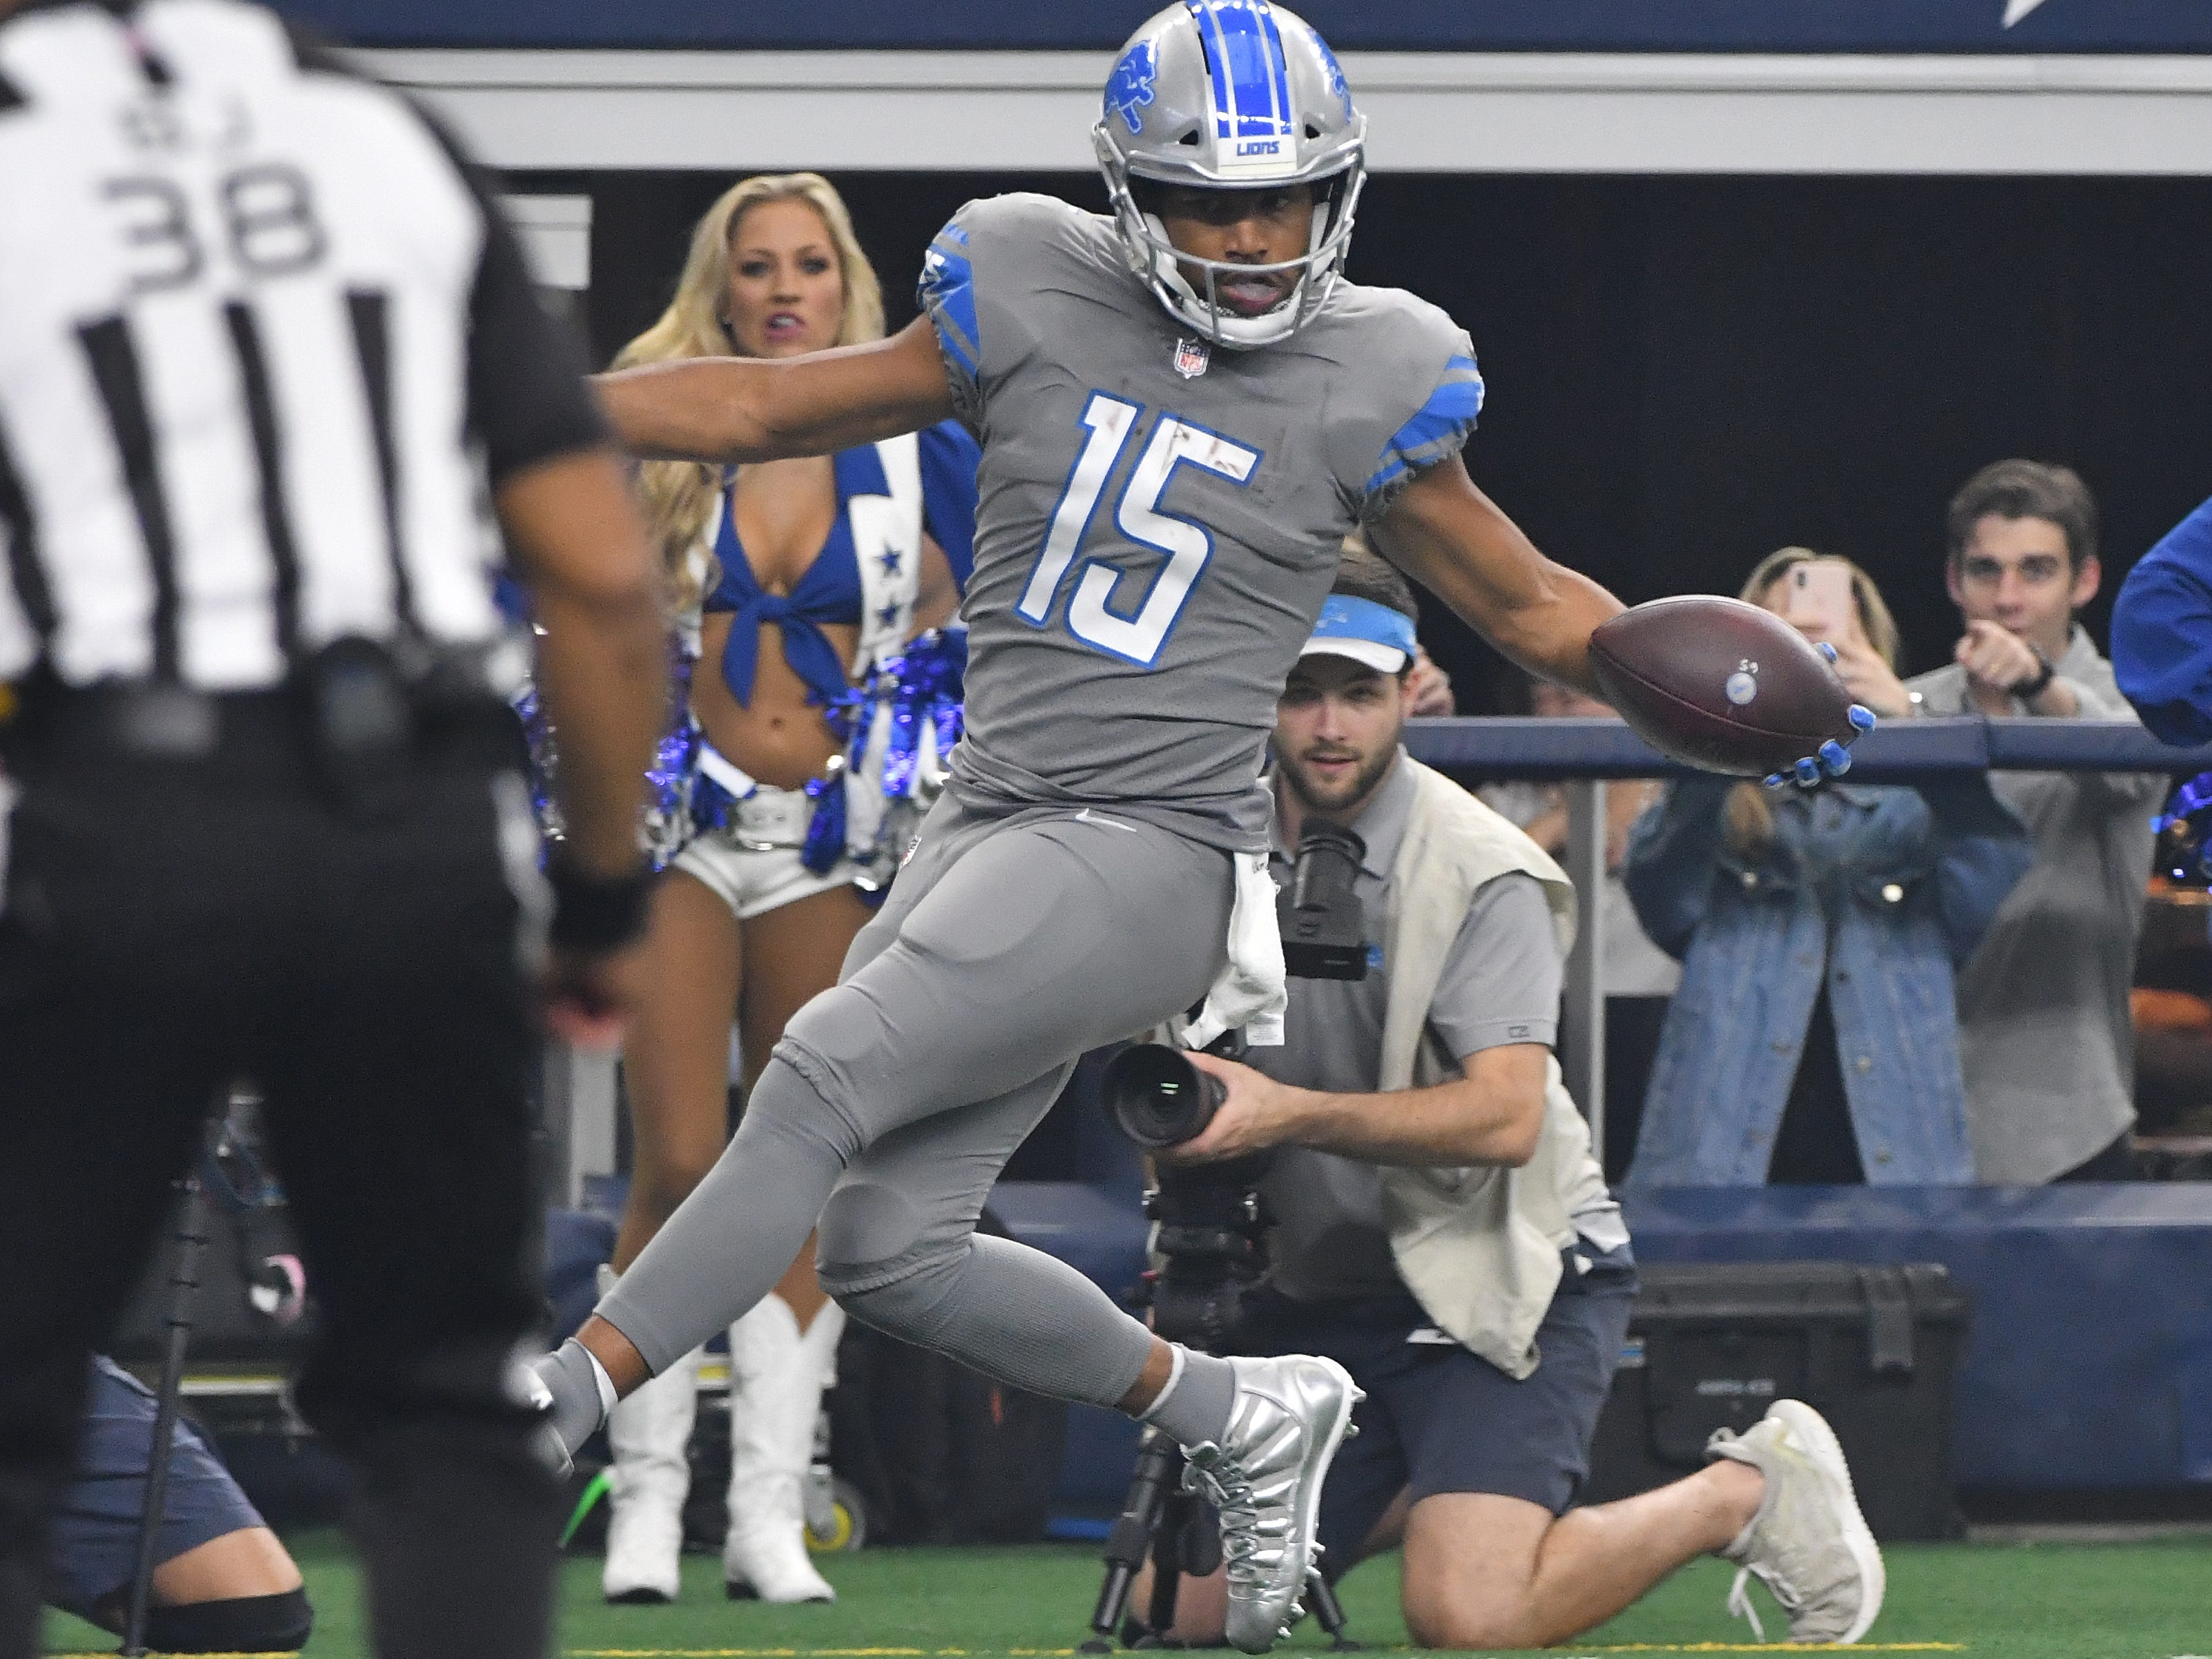 Lions wide receiver Golden Tate tip toes down the sidelines into the end zone for at touchdown in the first quarter.